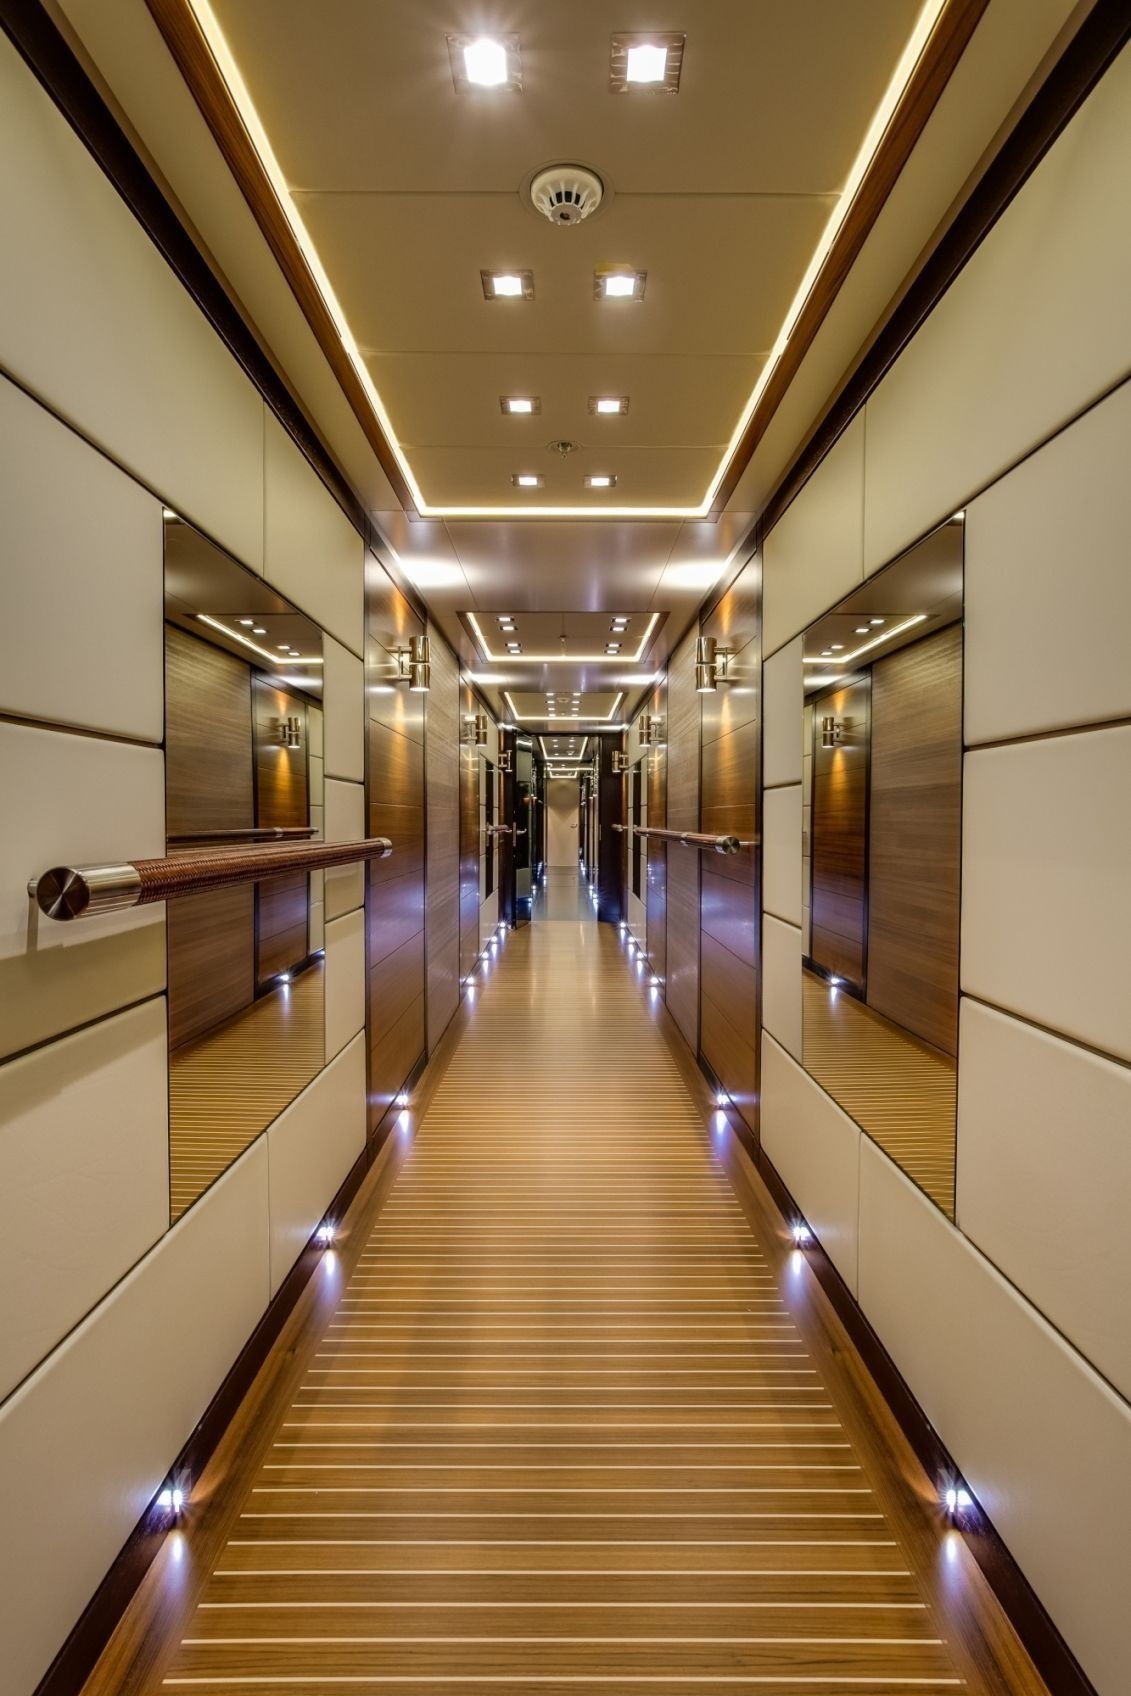 Grand Foyer Yacht : Girl image gallery luxury yacht browser by